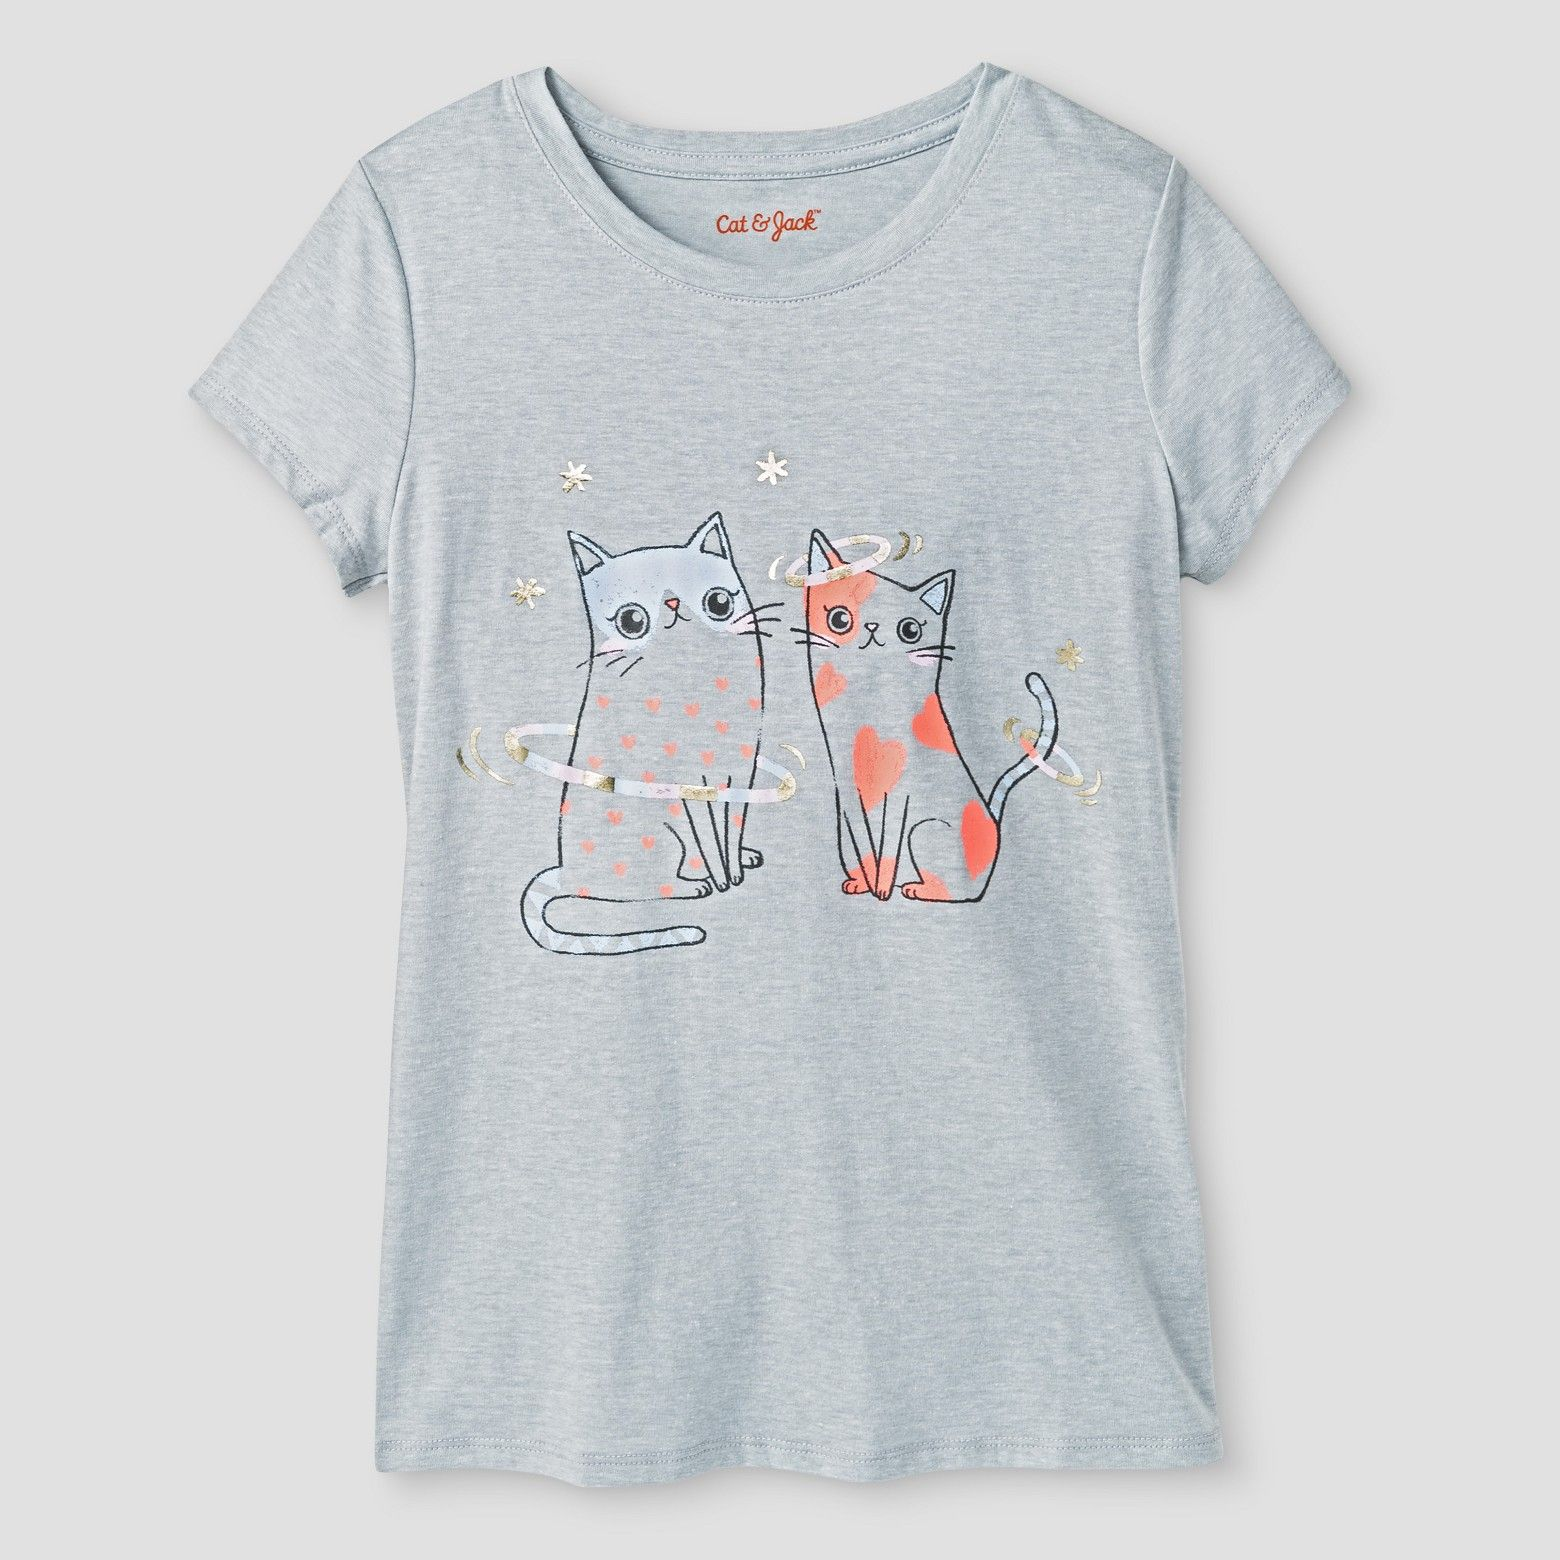 This Girls Cat Graphic Tee from Cat & Jack in Masonry Gray will